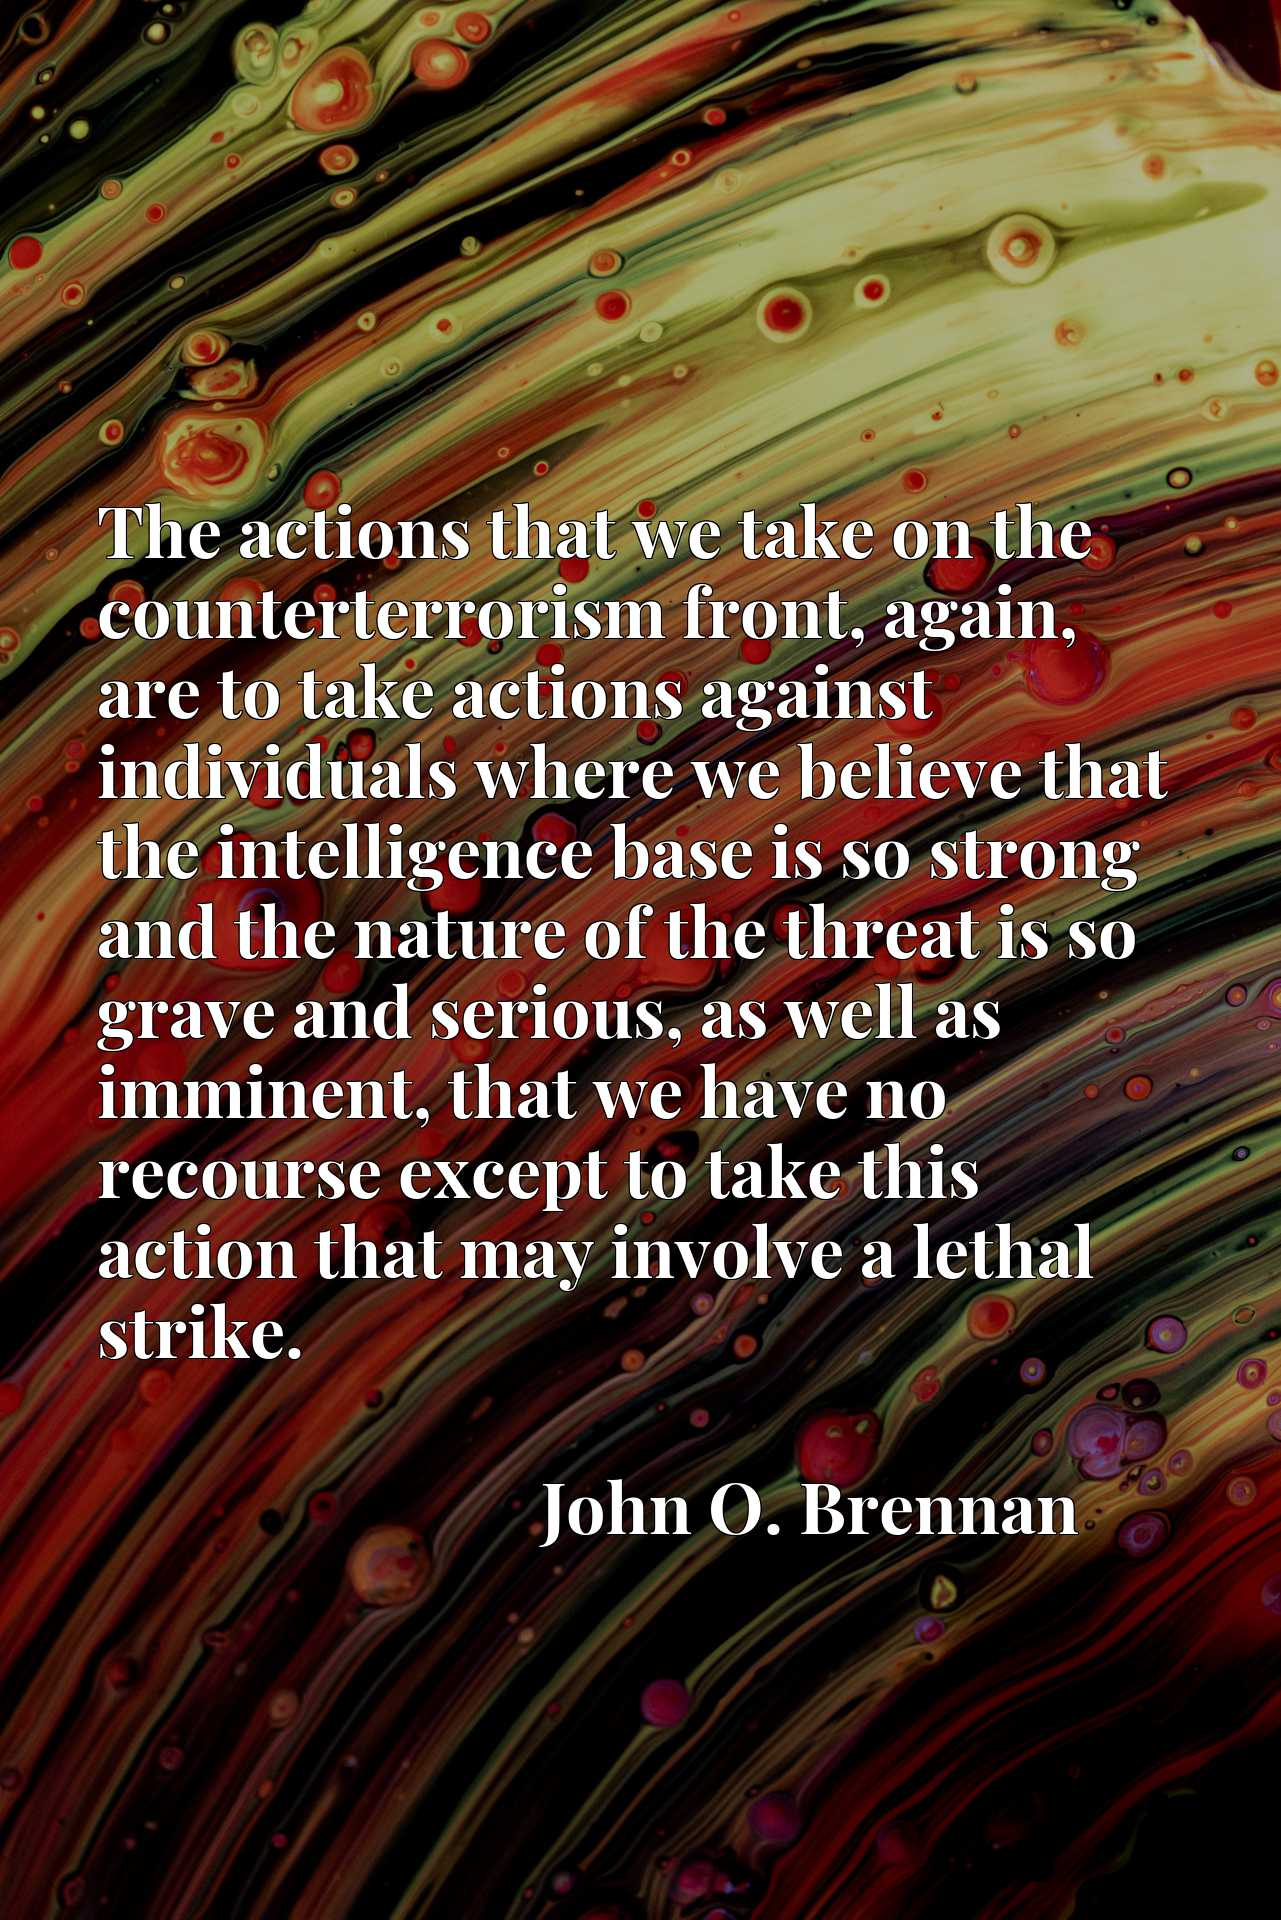 The actions that we take on the counterterrorism front, again, are to take actions against individuals where we believe that the intelligence base is so strong and the nature of the threat is so grave and serious, as well as imminent, that we have no recourse except to take this action that may involve a lethal strike.